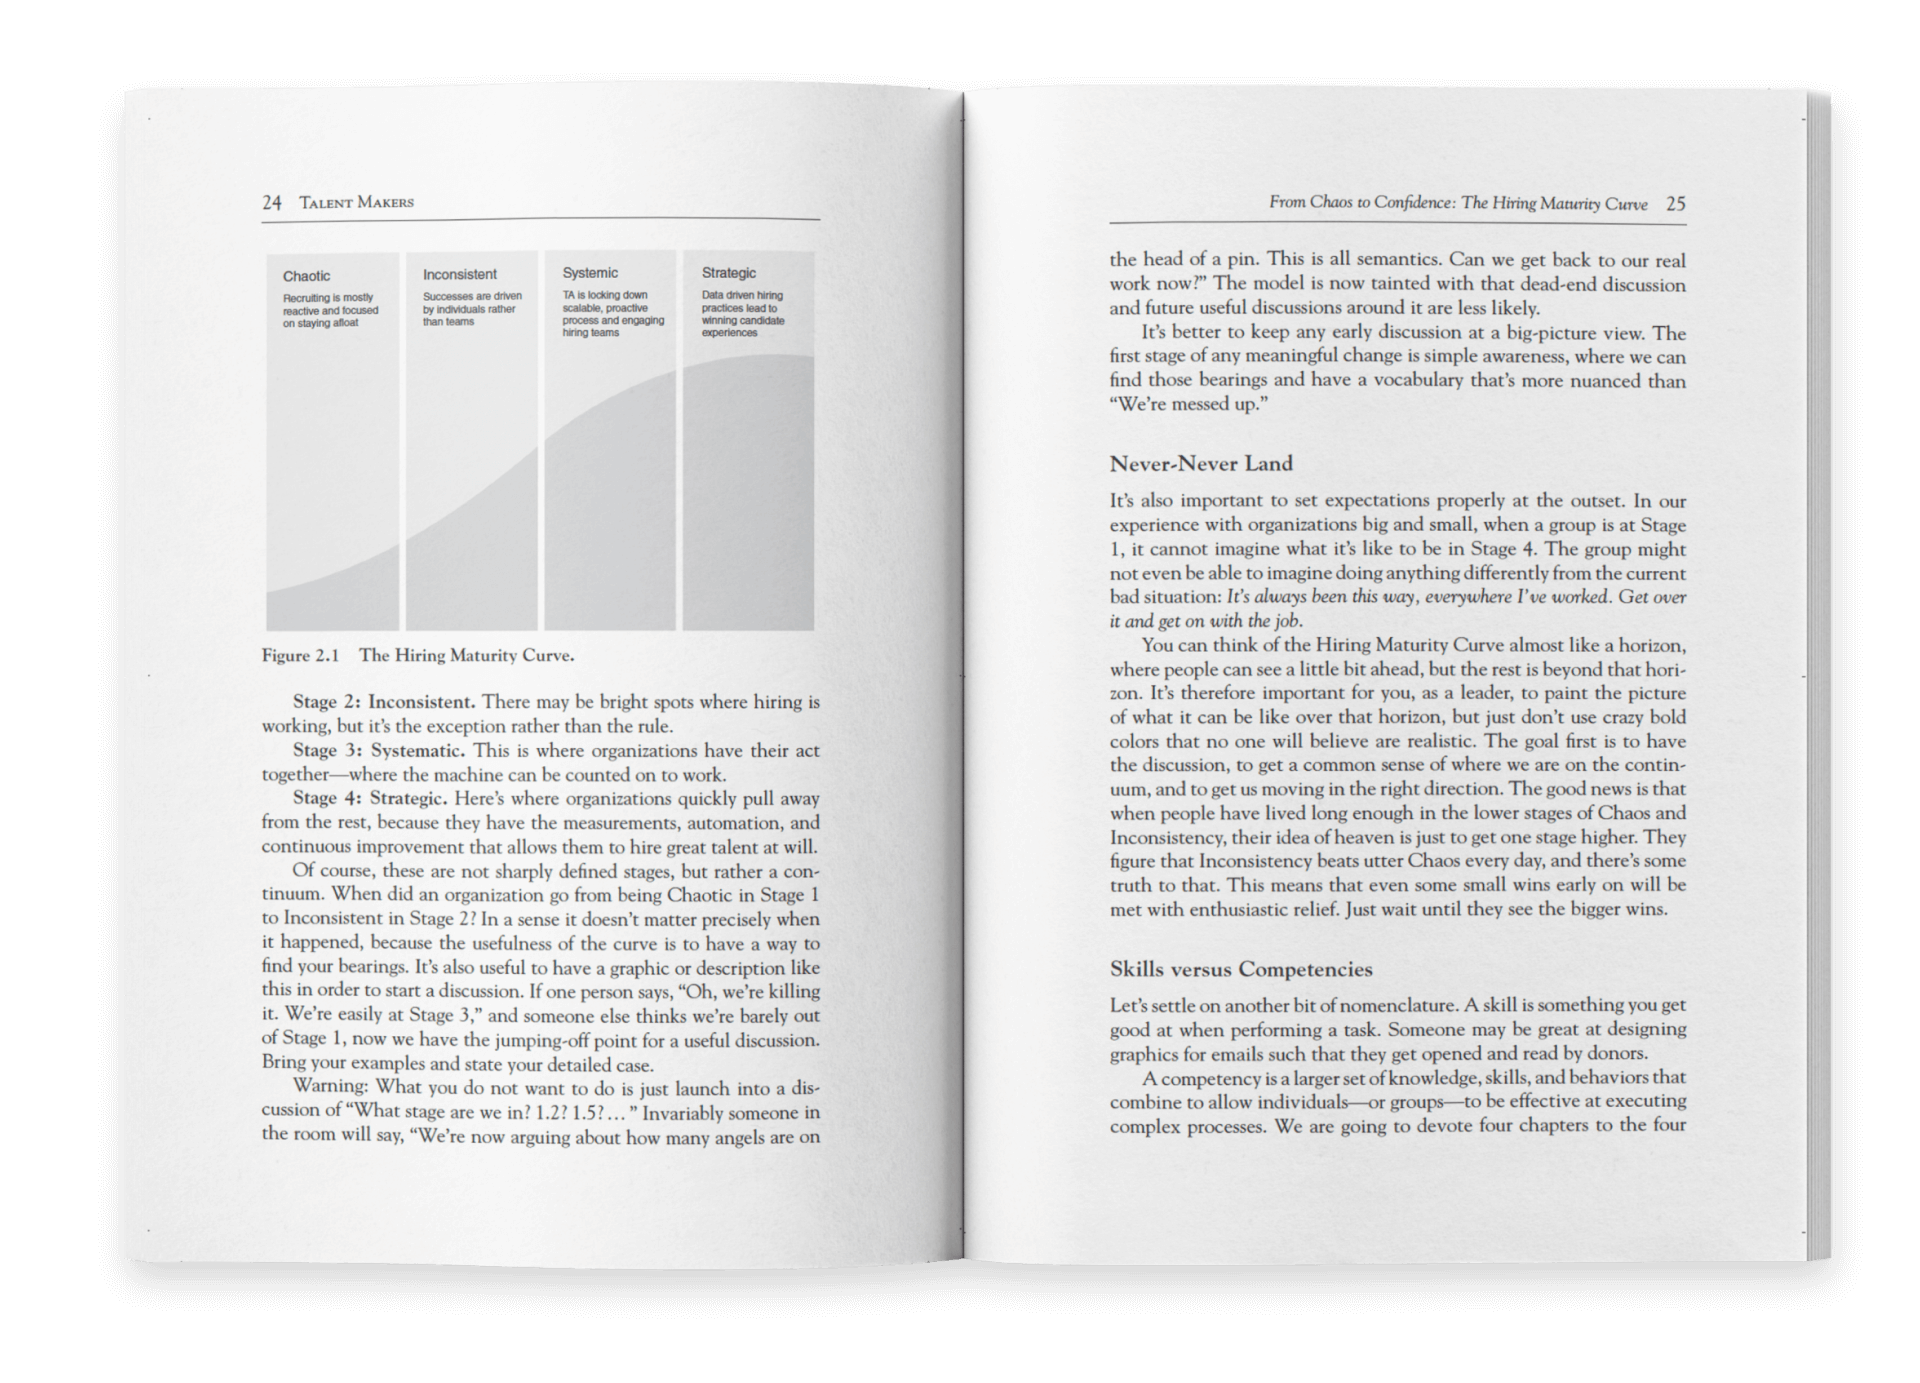 Image of an open spread of Talent Makers book